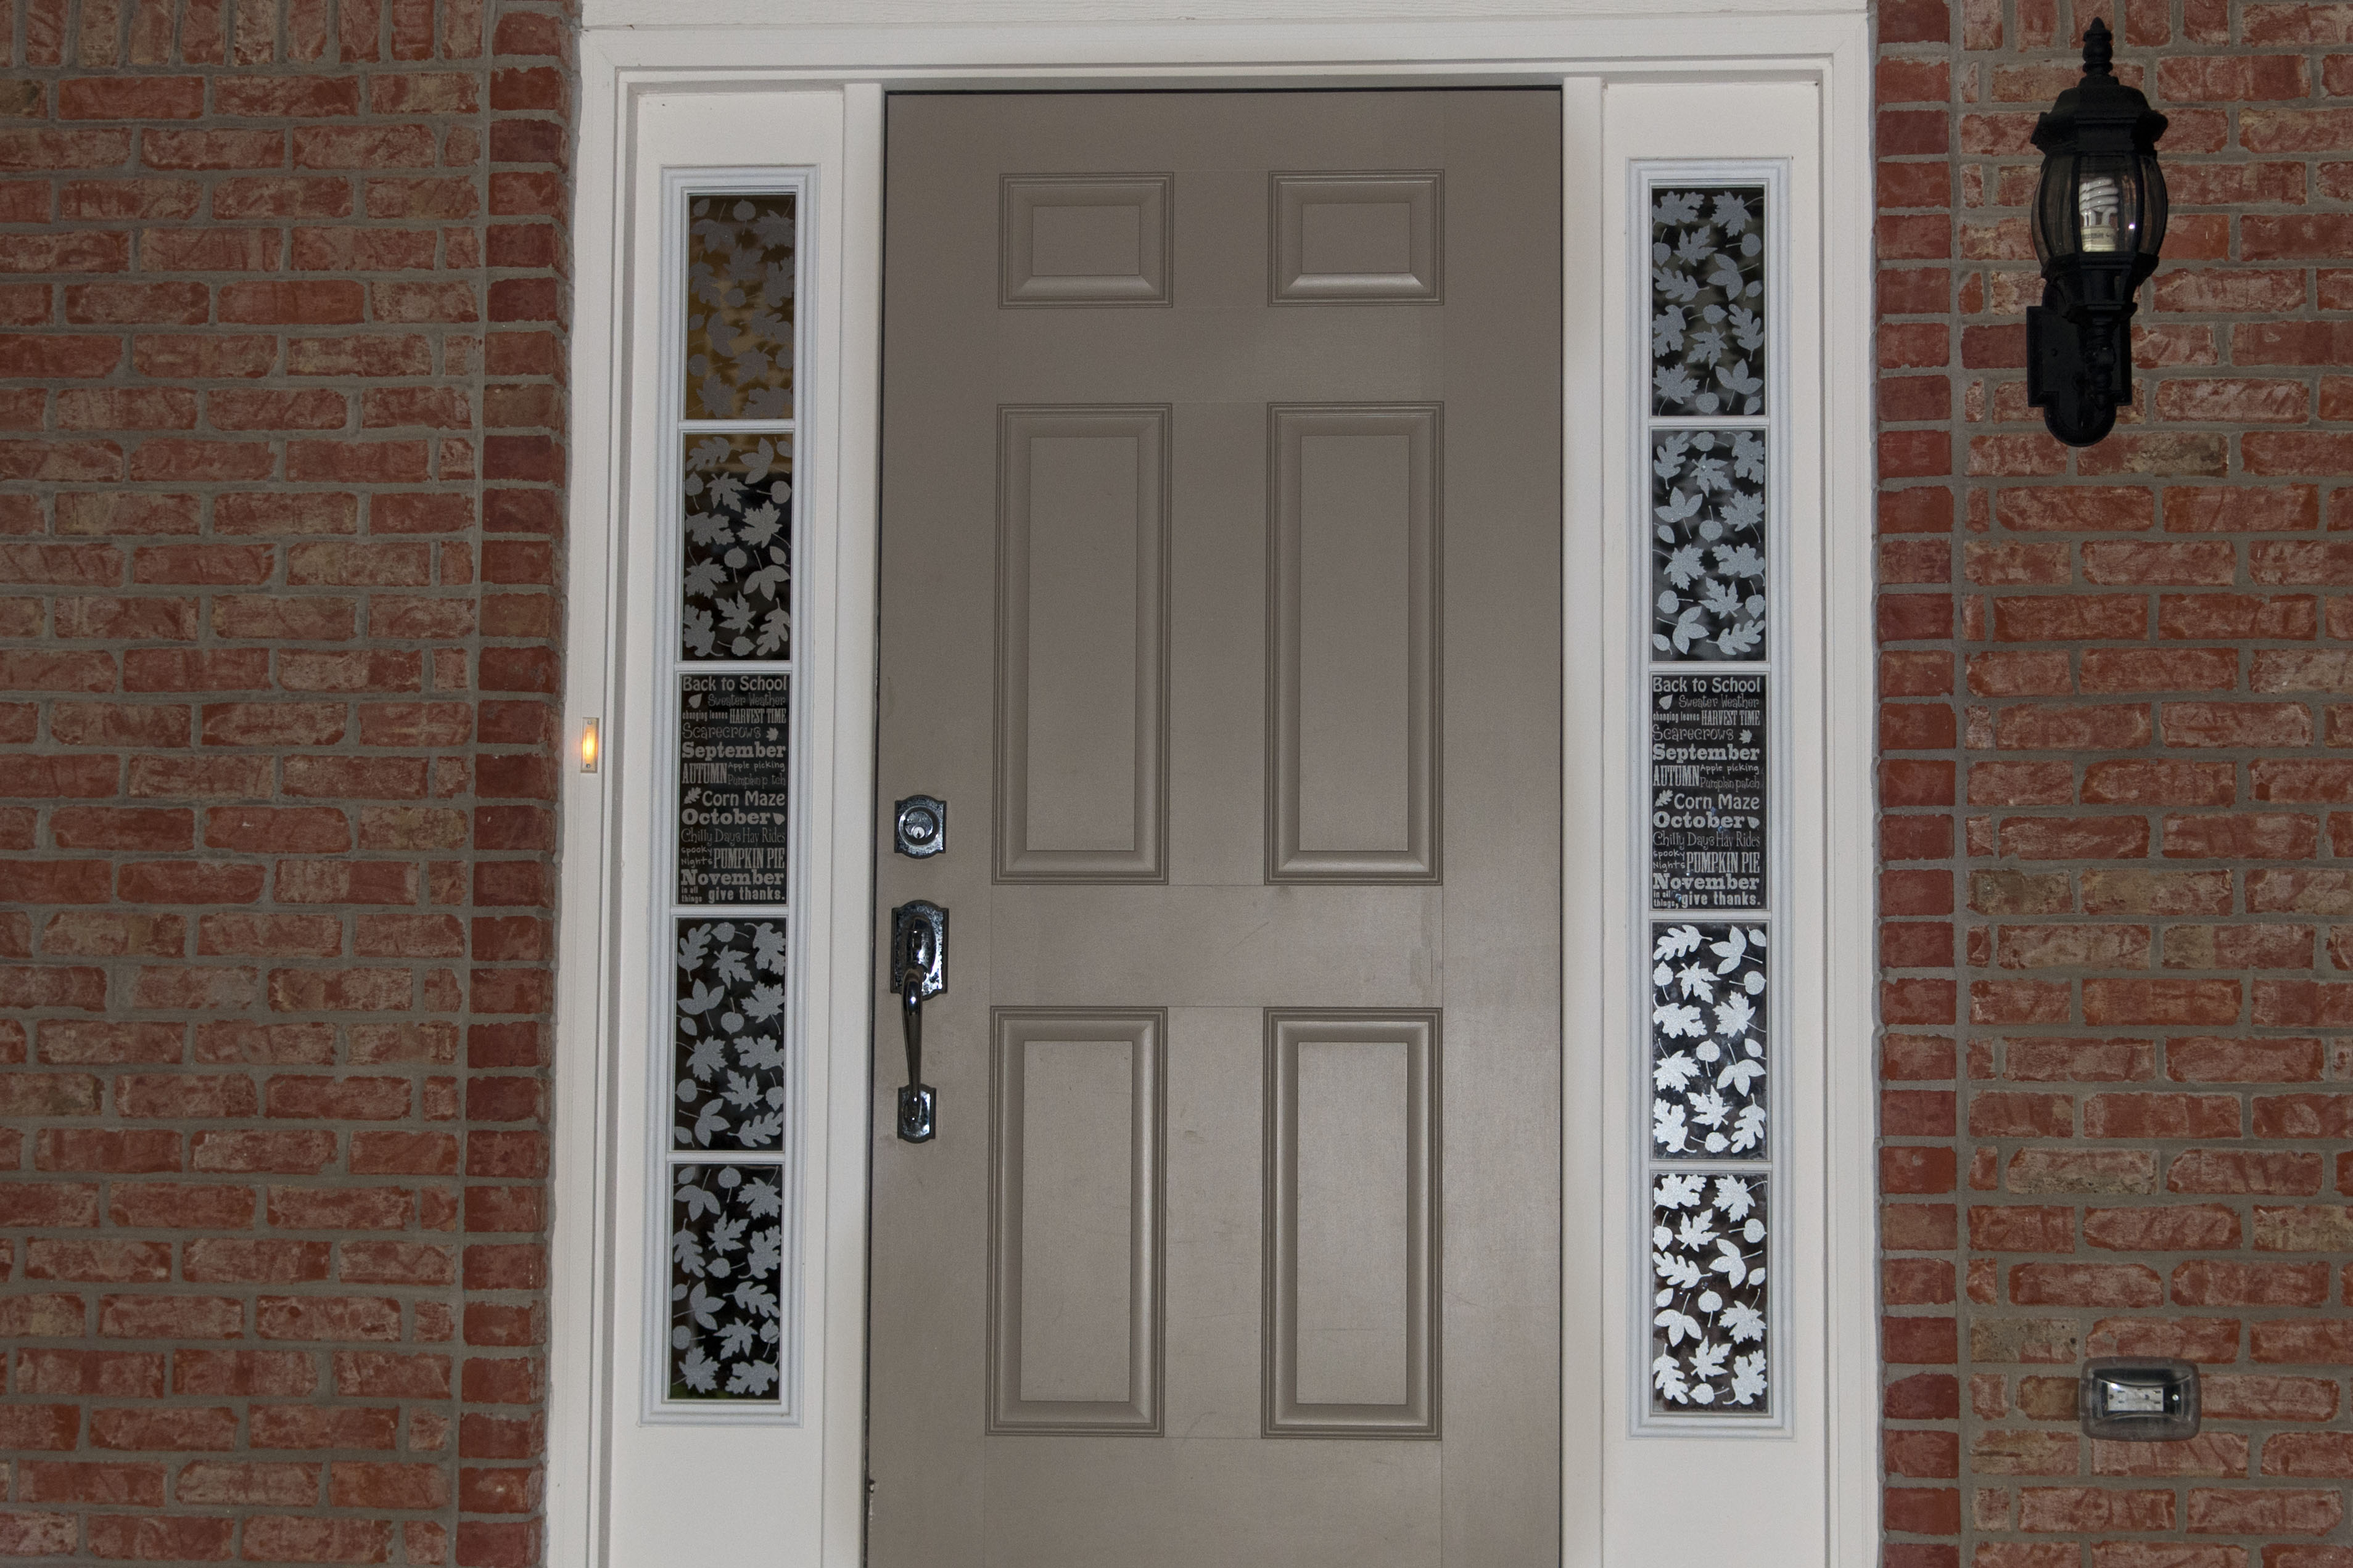 Sidelight Window Film With Fl Patterns Beige Tone Main Door Red Bricks Wall Idea Traditional